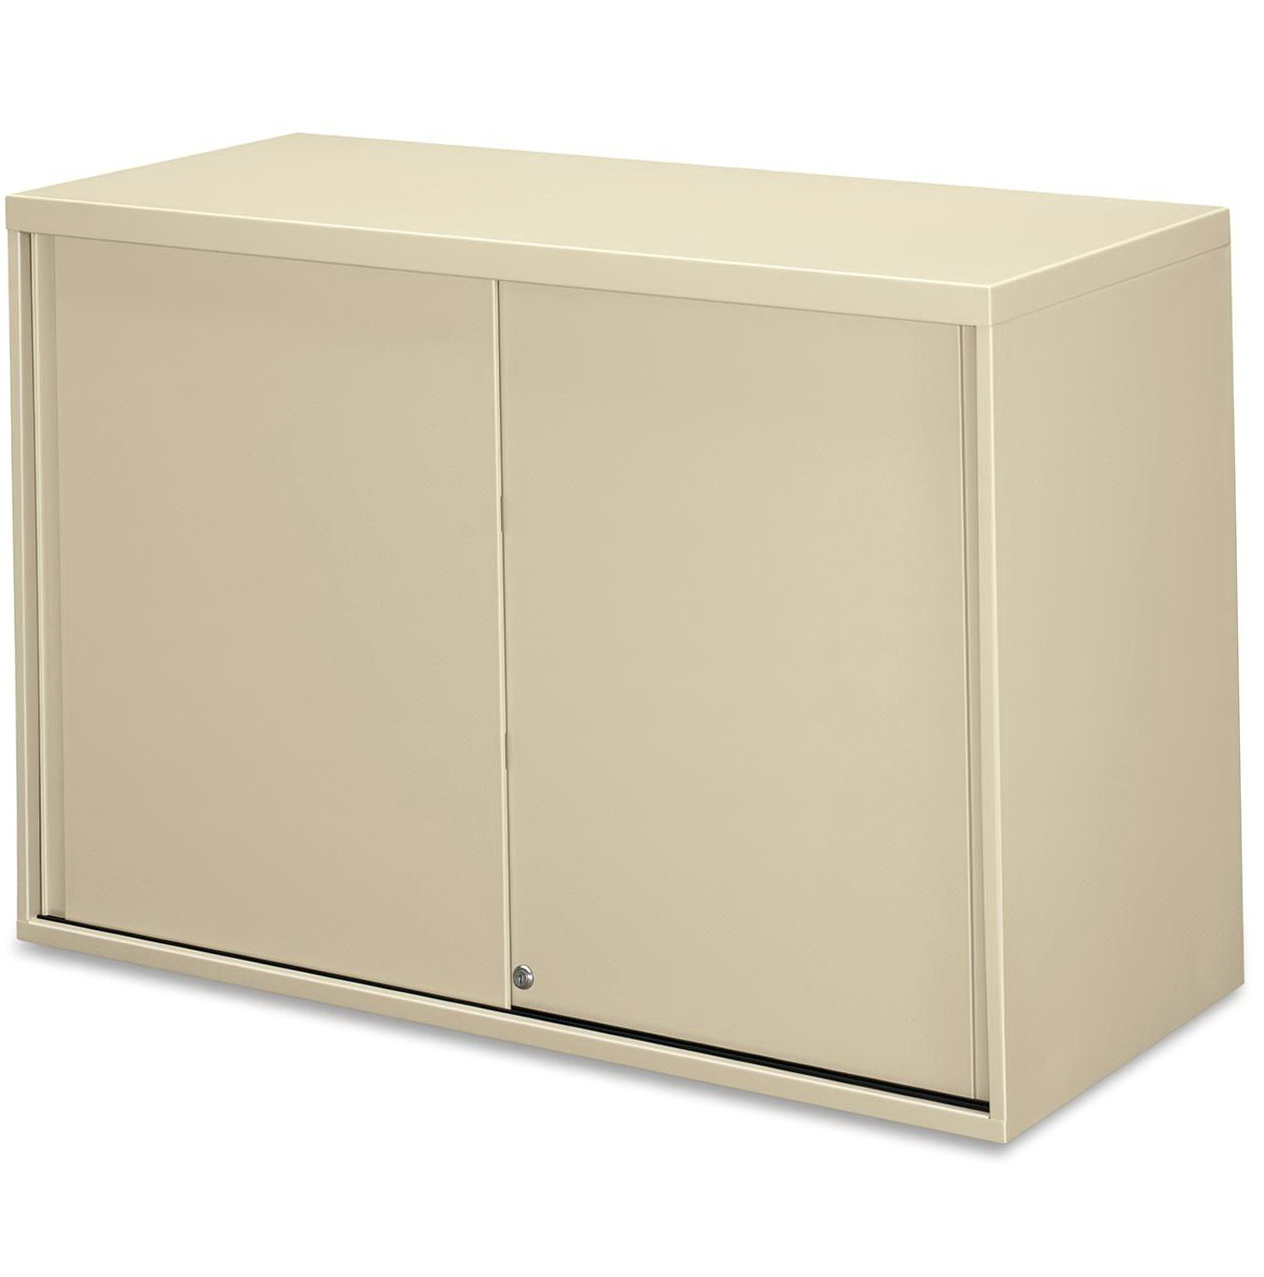 Locking Storage Cabinet Home Depot